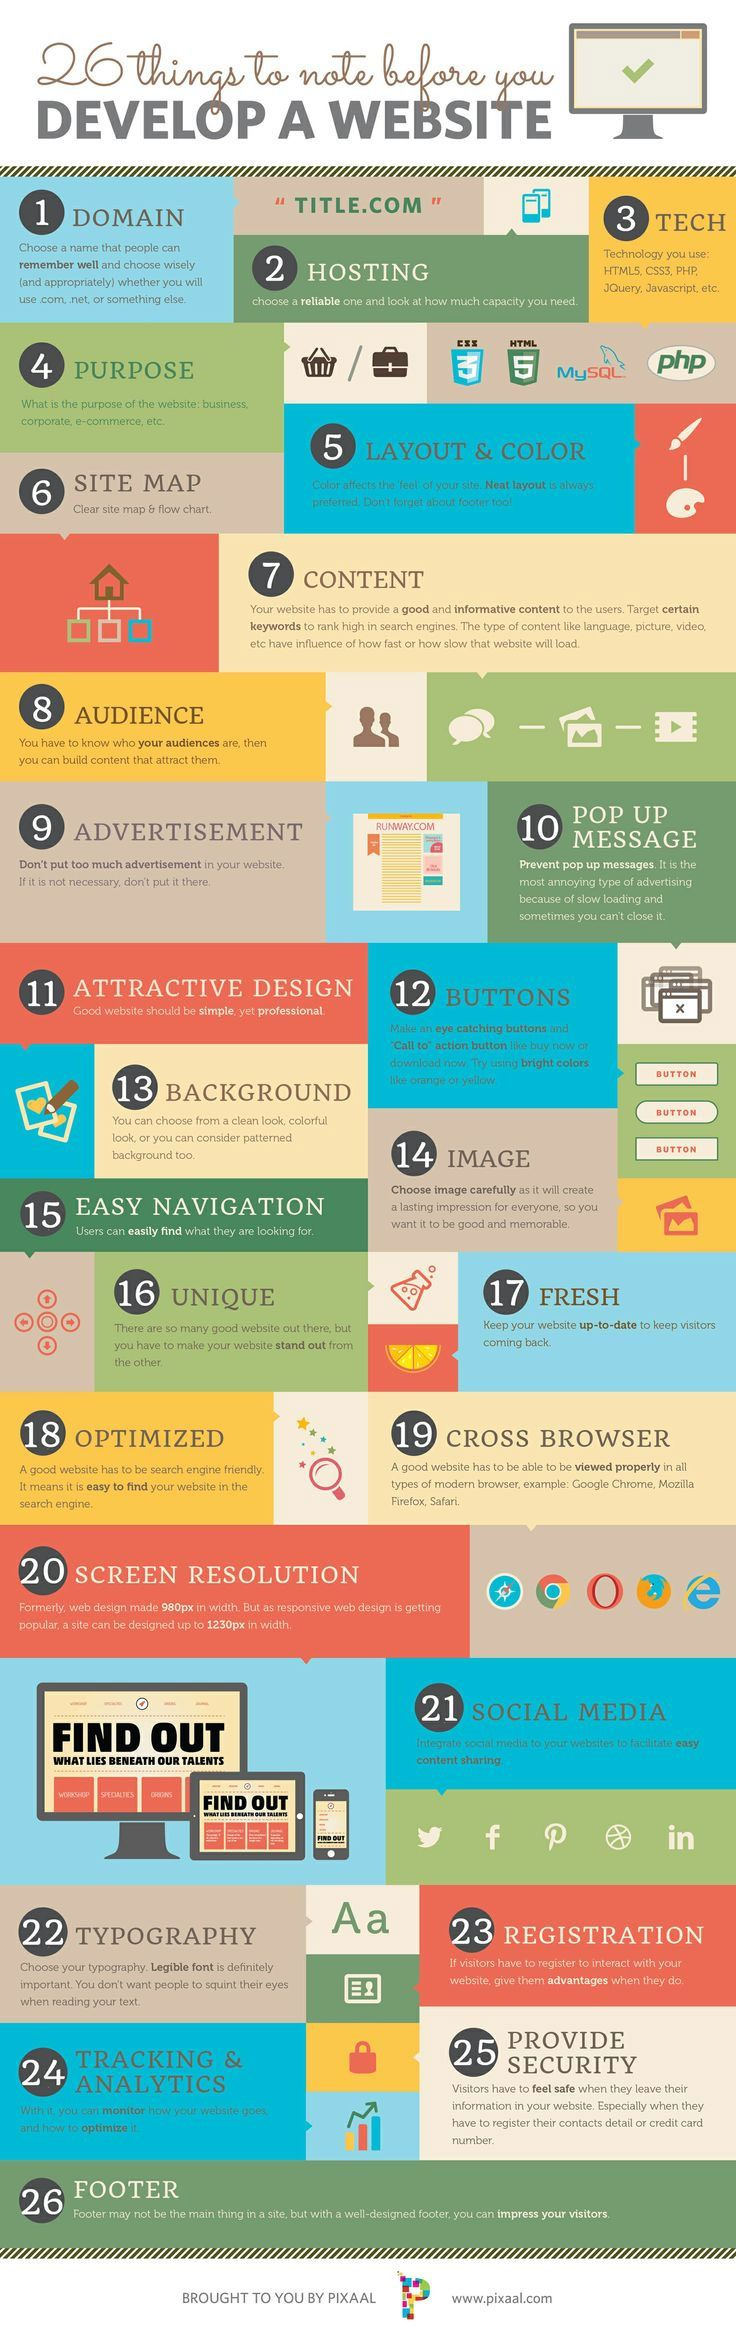 26 things to remember in #WebDevelopment. New #Infographic at http://webmag.co/26-things-remember-website-development/